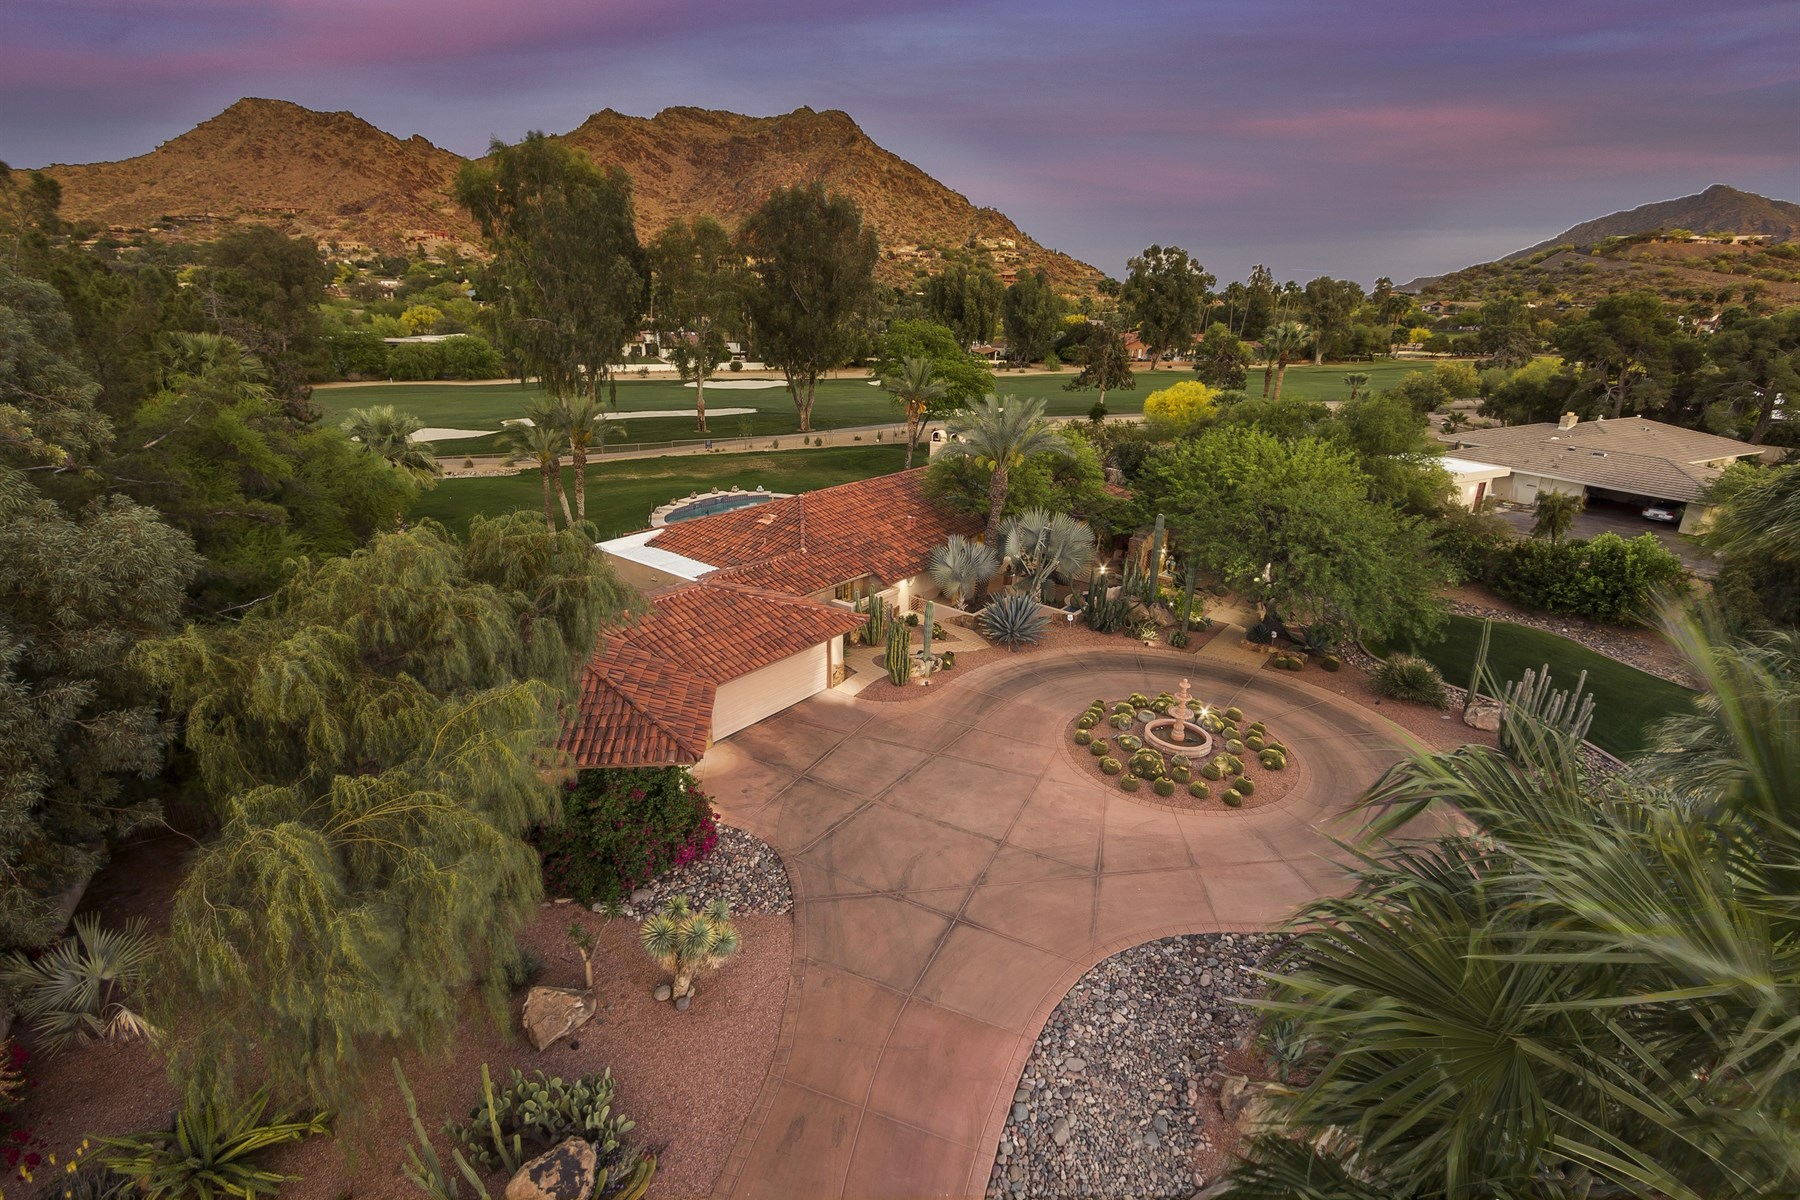 Single Family Home for Sale at Beautiful home is located on Paradise Valley Country Club Golf Course. 7535 N Tatum Blvd Paradise Valley, Arizona 85253 United States